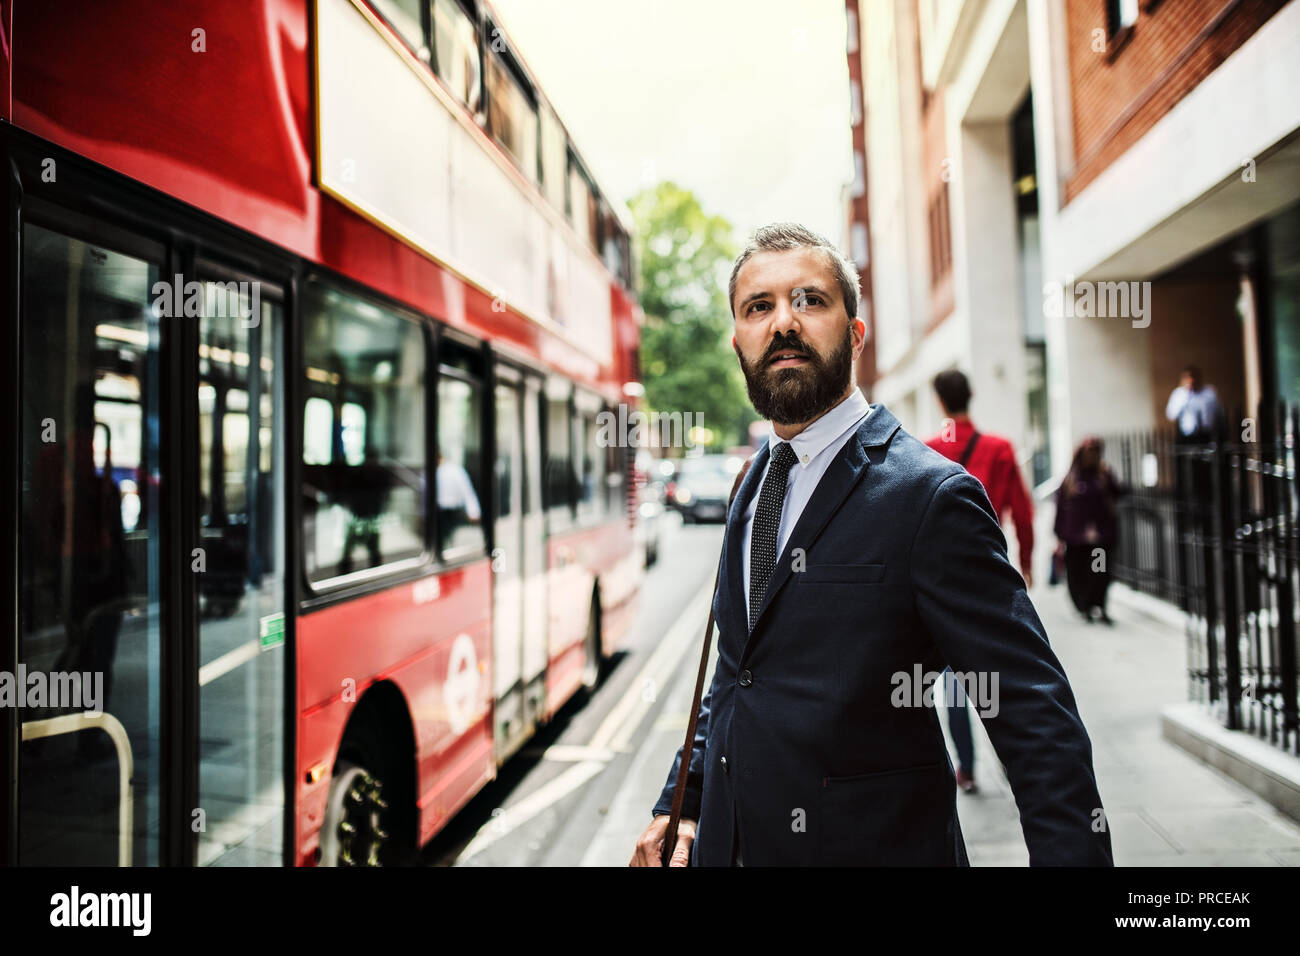 Hipster businessman standing on the street, waiting for the bus in London. - Stock Image